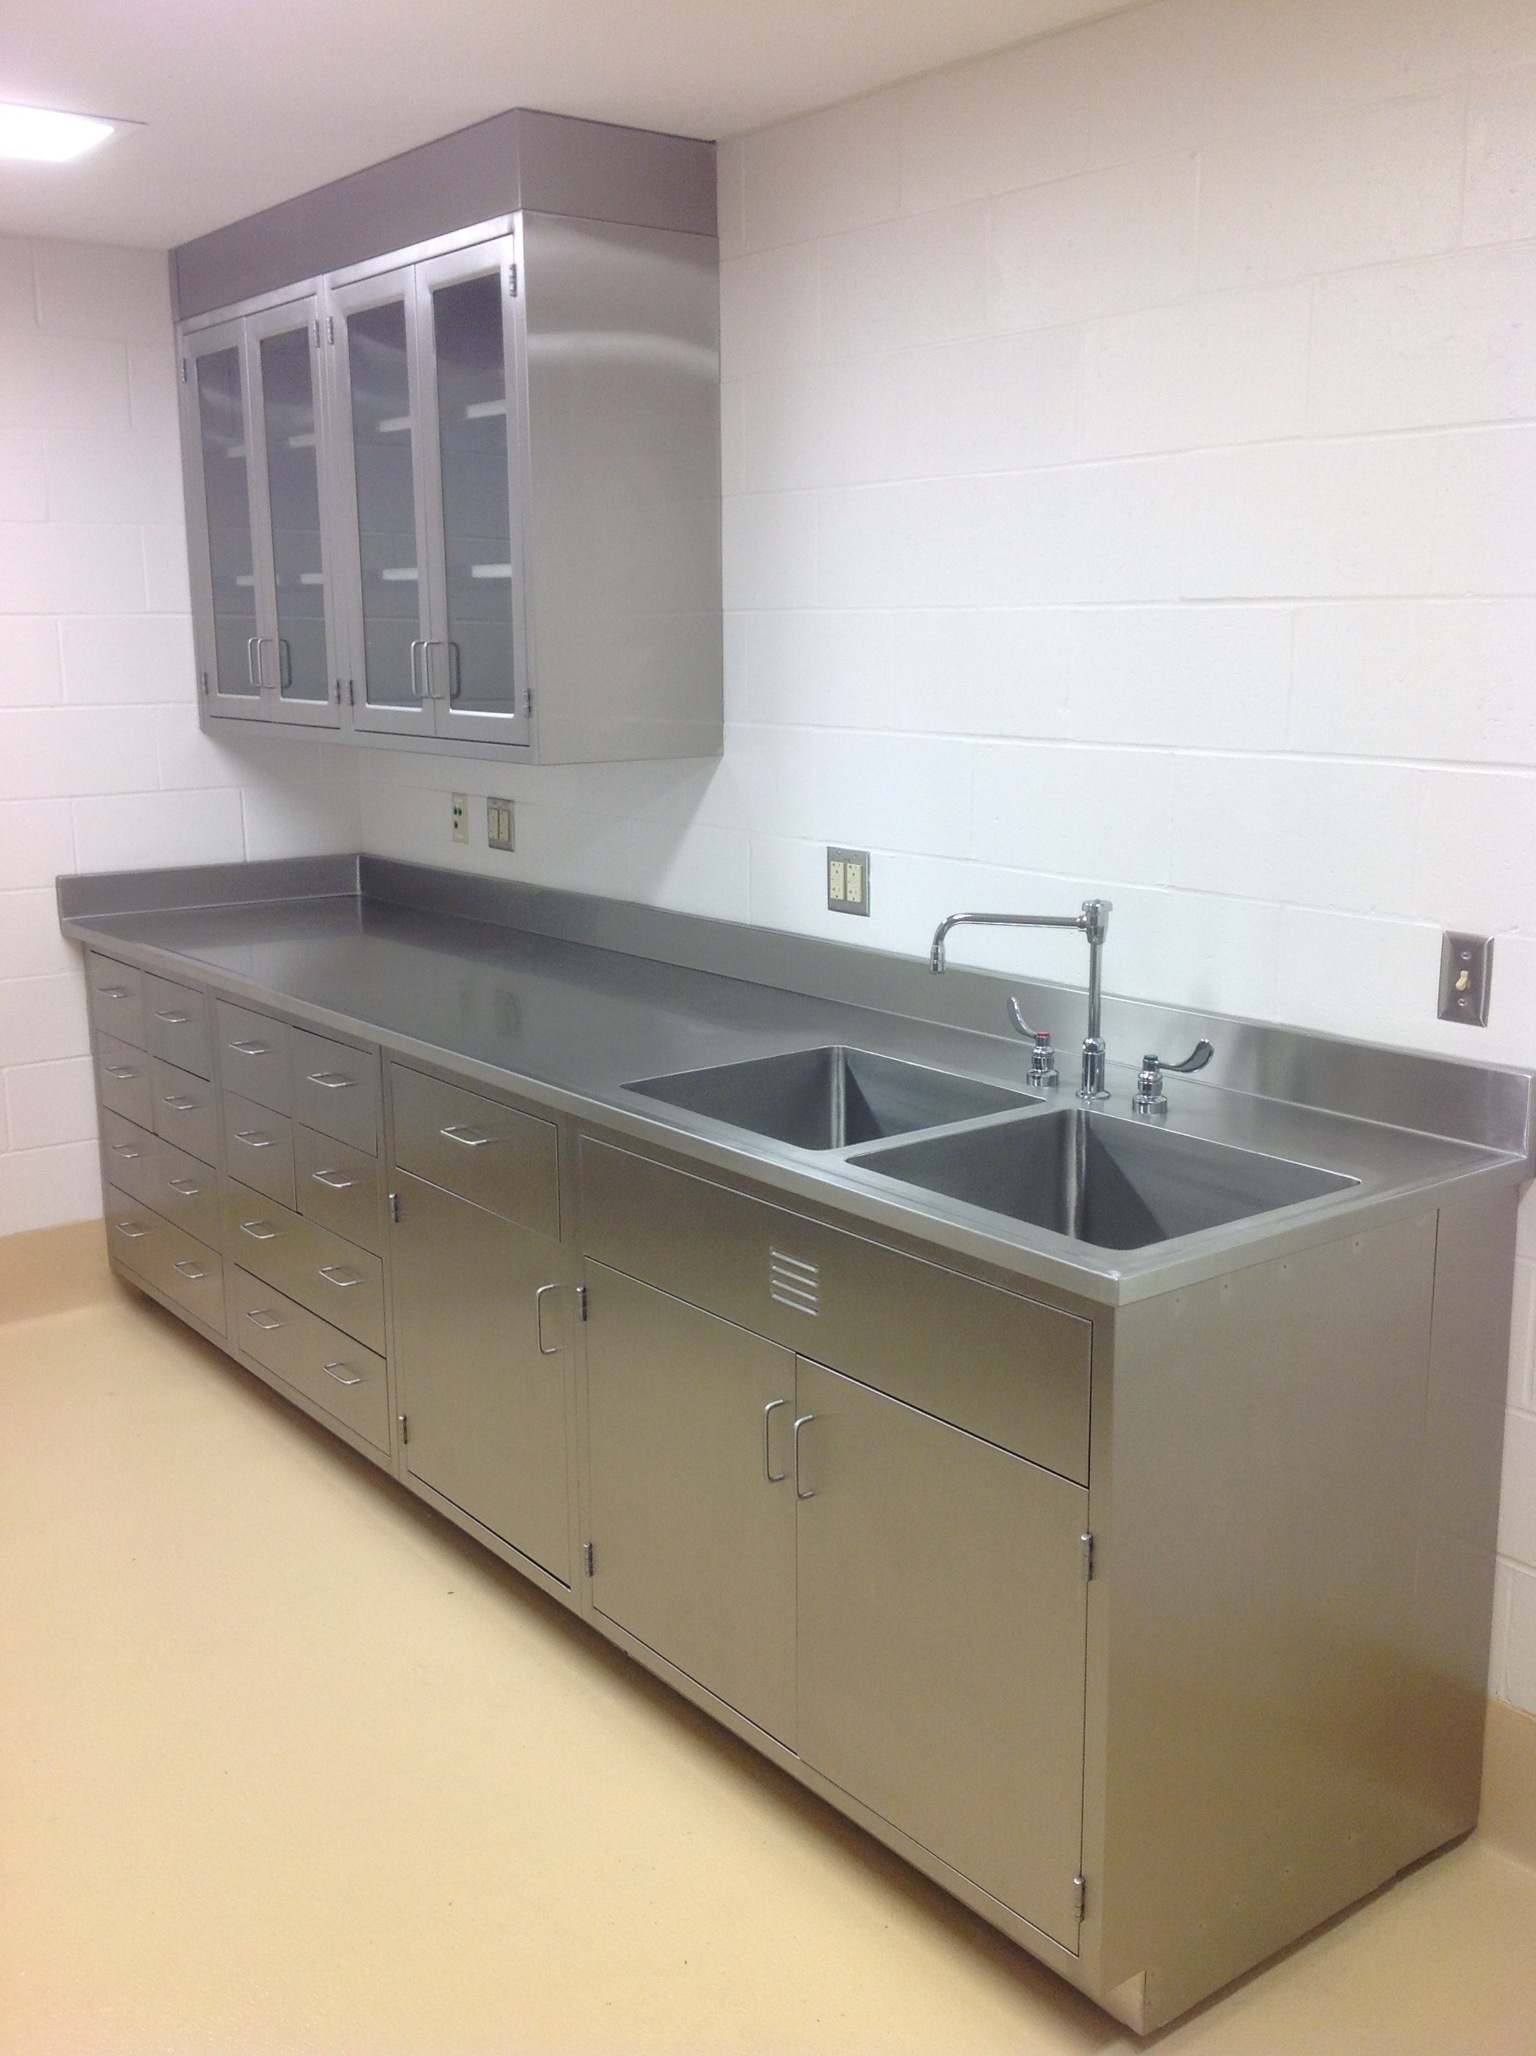 Missouri State University Was Looking To Upgrade The Facilities For Their Health Services Programs School Administration Hired General Contractor Dewitt